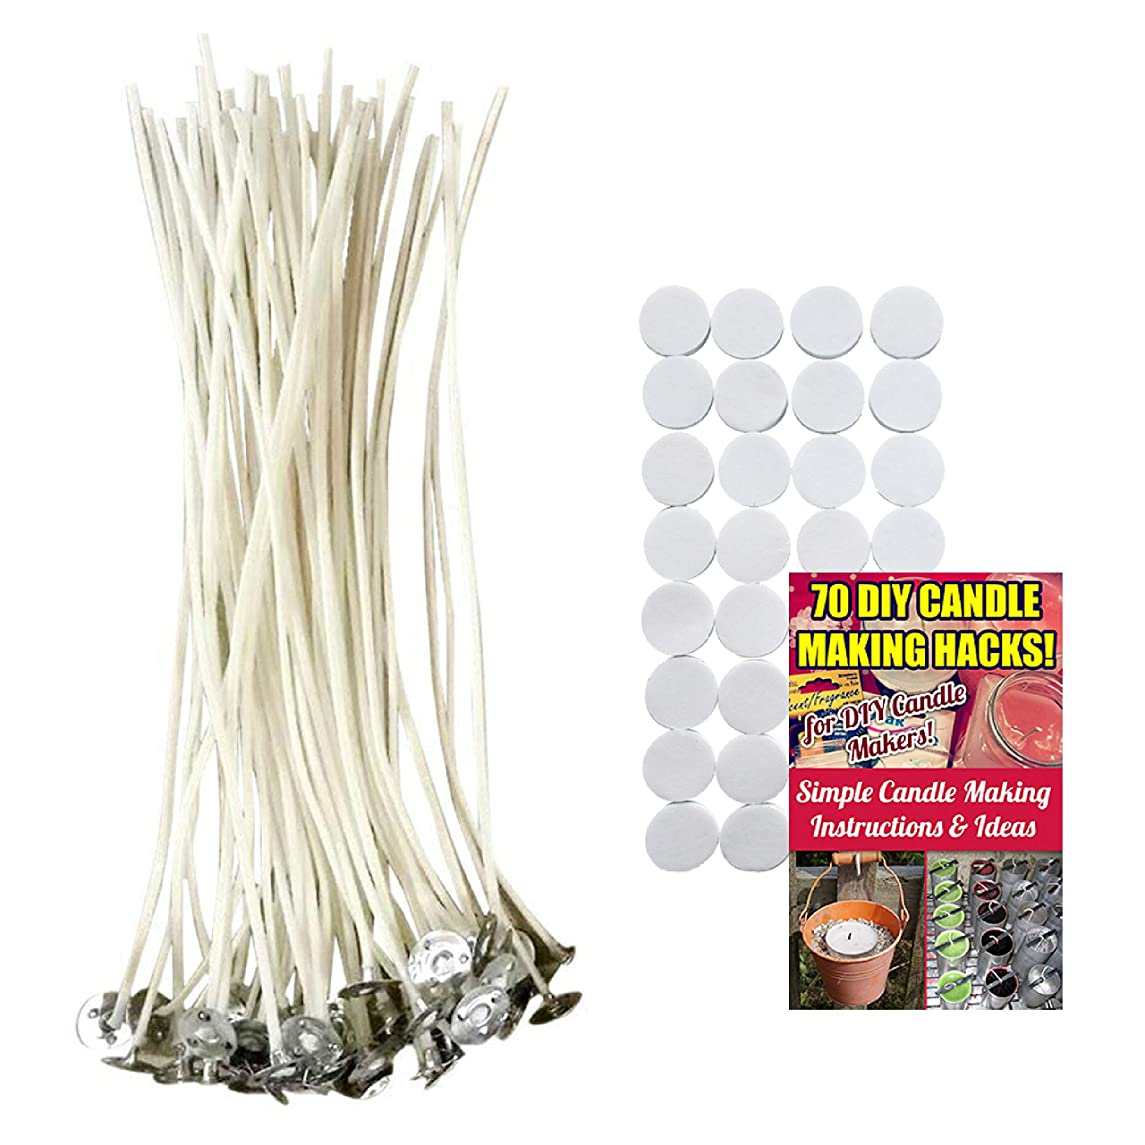 Cozyours 8 inch Candle Wicks with Candle Wick Stickers, 50 PCS, Low Smoke&Natural, Candle Wicks for Candle Making.Candle DIY Hacks E-Book Included!